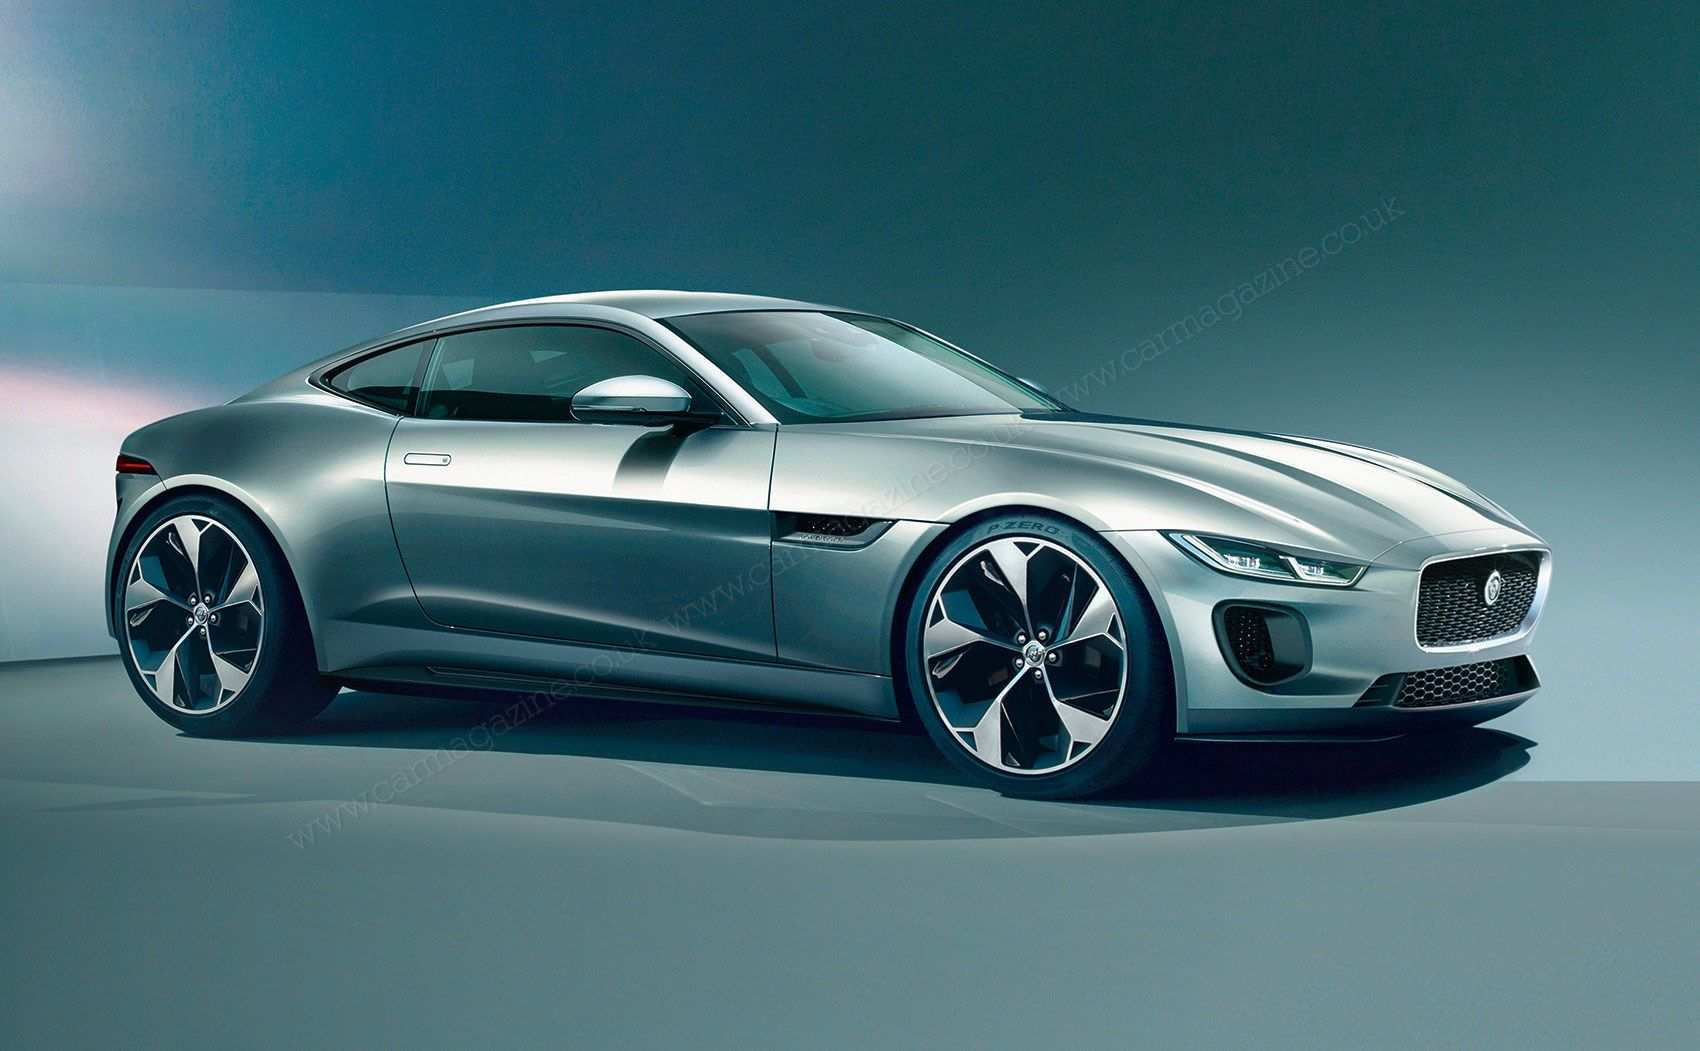 57 Gallery of Jaguar Xe 2020 New Concept Research New with Jaguar Xe 2020 New Concept